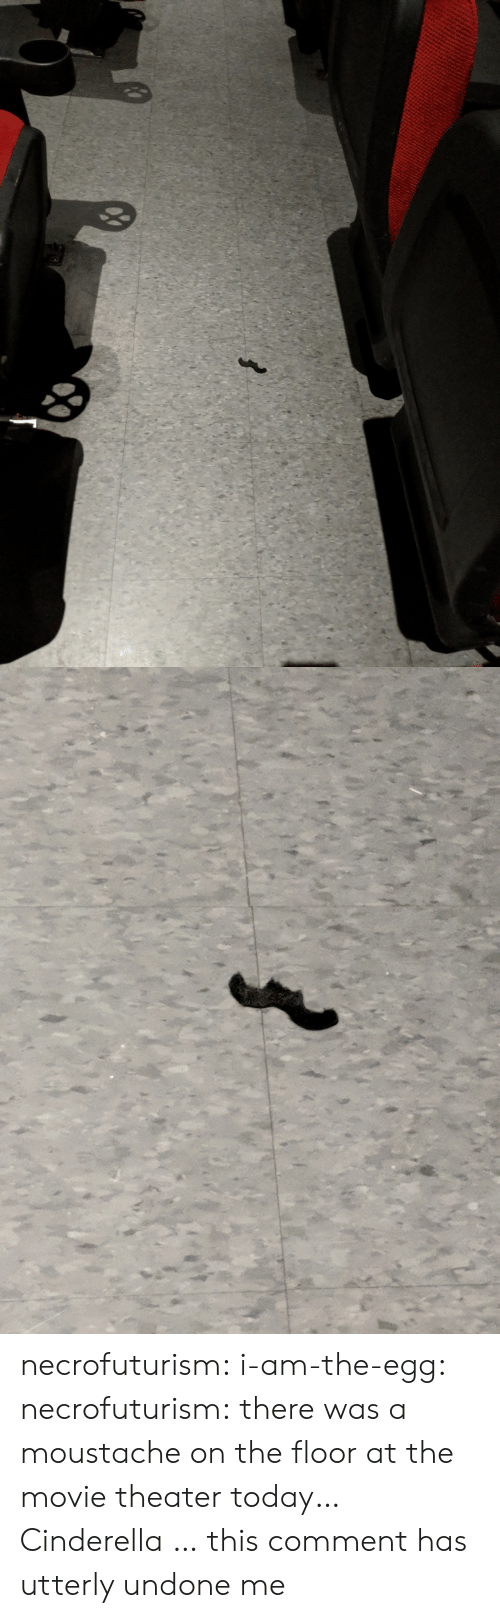 Cinderella : necrofuturism:  i-am-the-egg:  necrofuturism:  there was a moustache on the floor at the movie theater today…  Cinderella …  this comment has utterly undone me